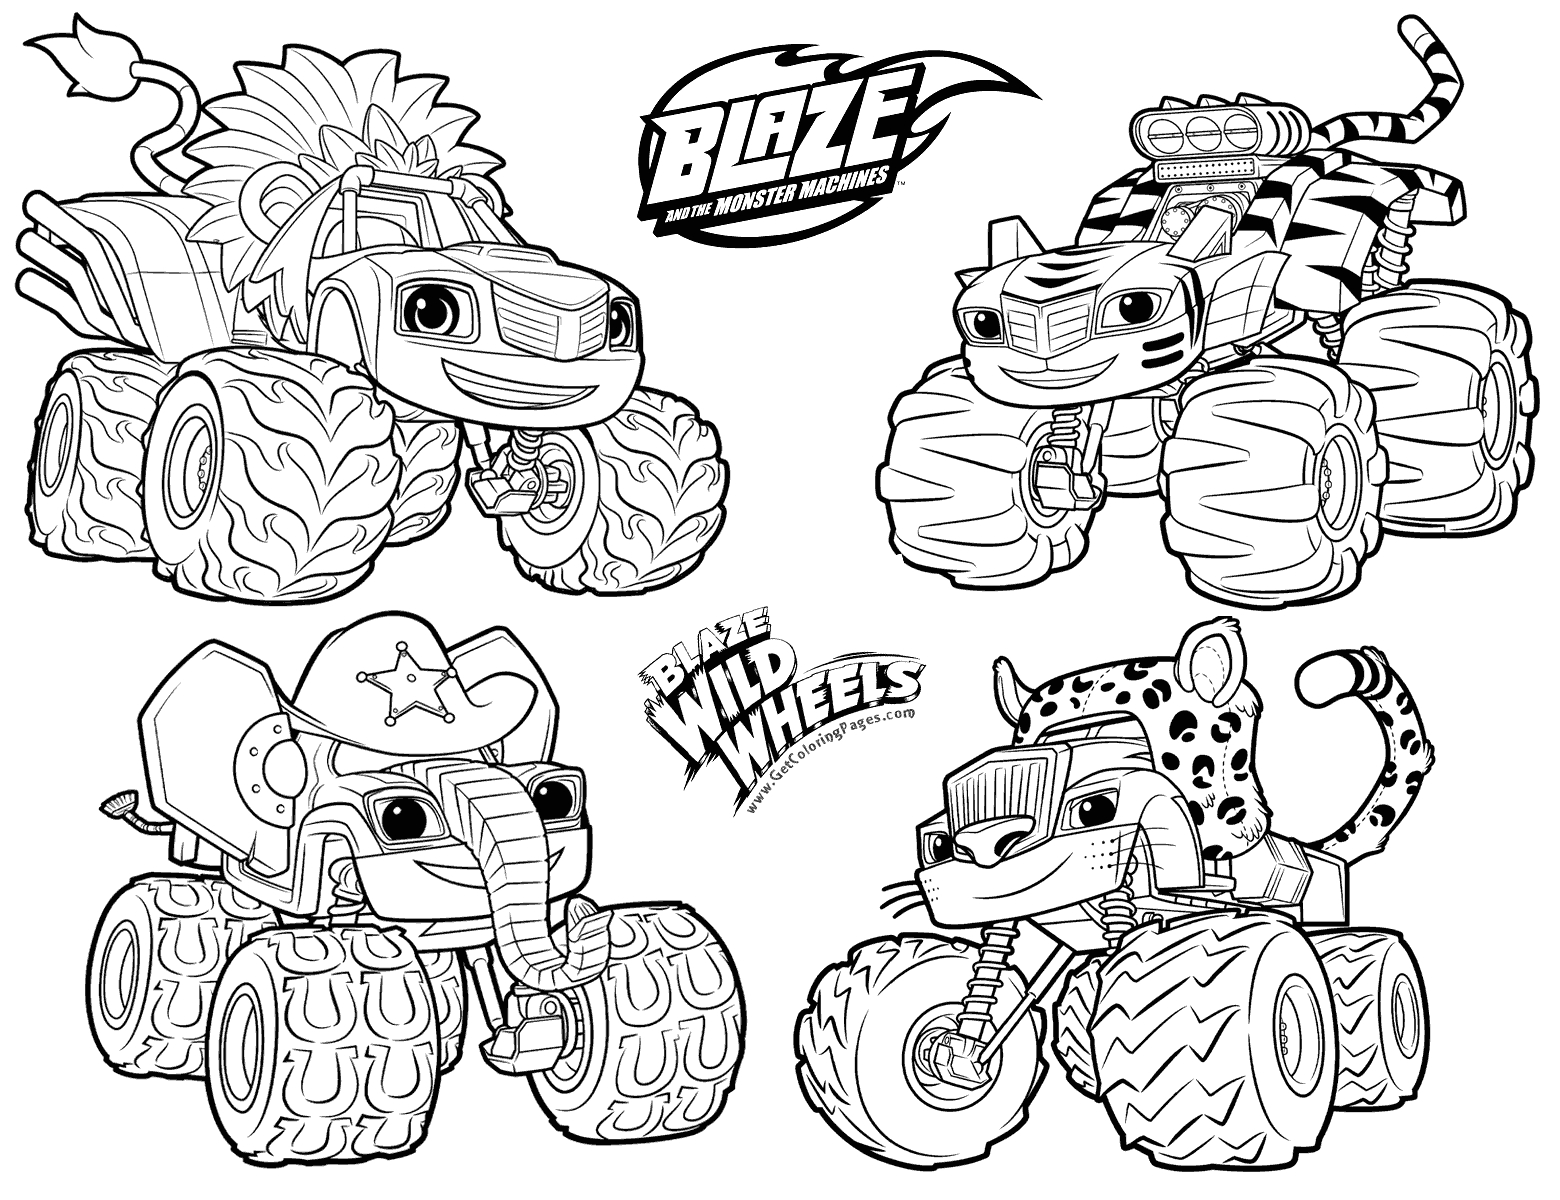 blaze and the monster machines printable coloring pages